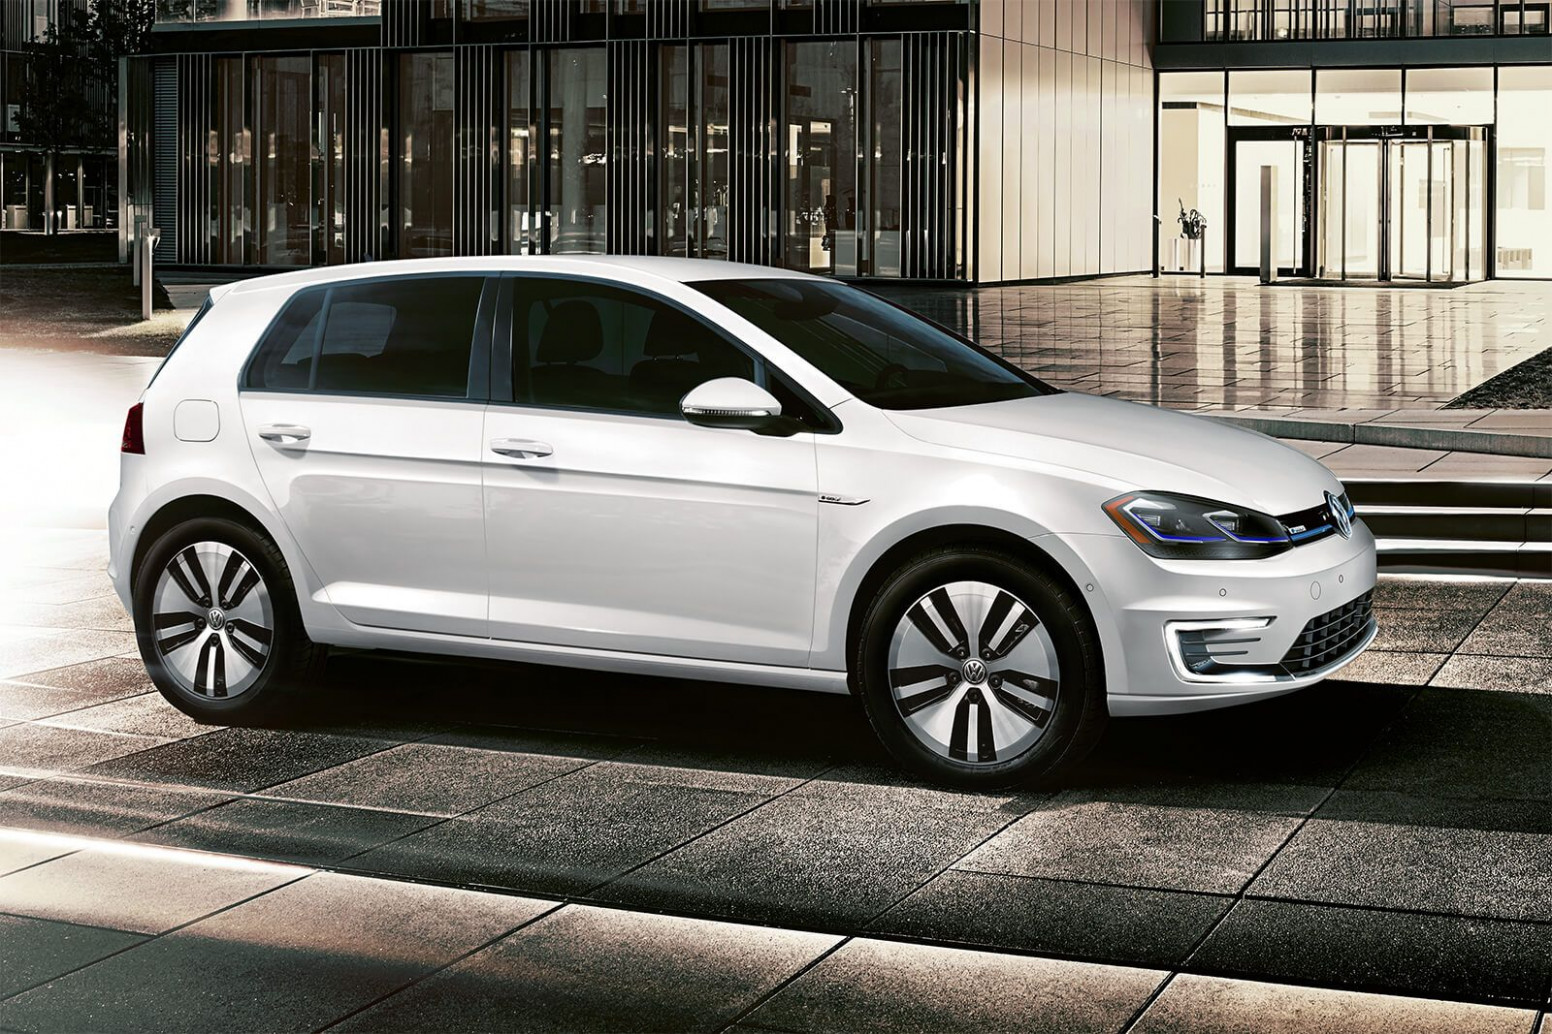 9 Volkswagen e-Golf Review, Pricing, and Specs